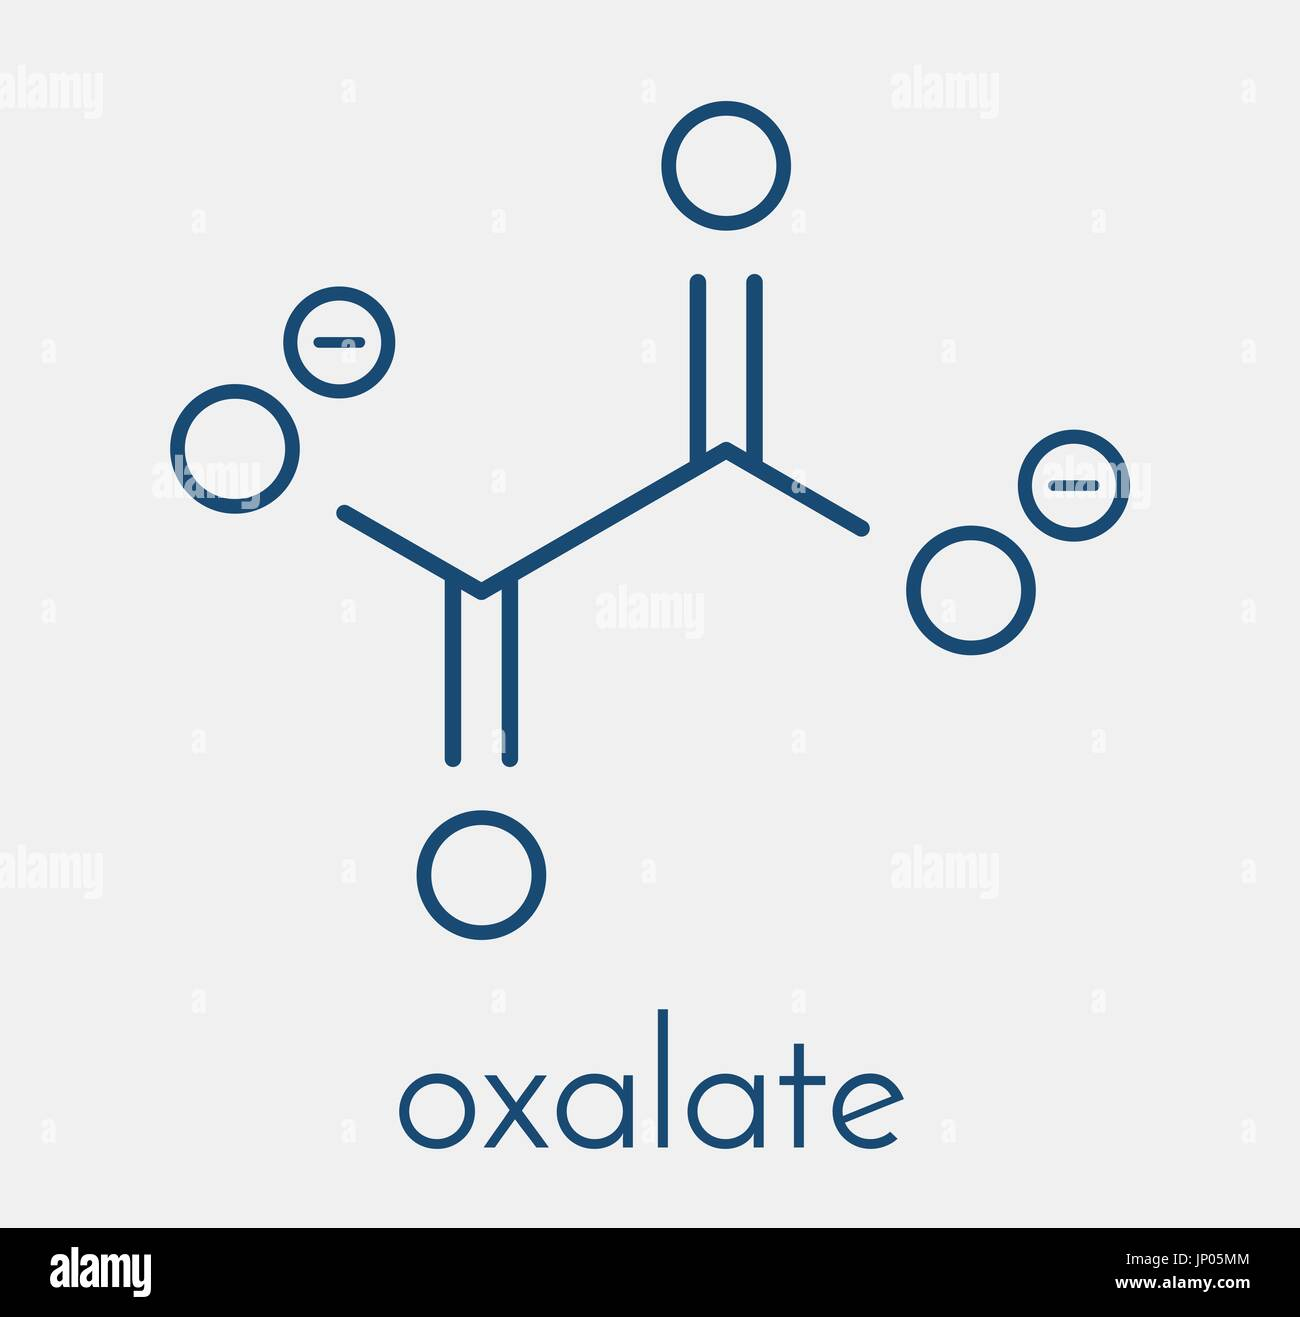 oxalate Oxalate lab 5 determination of composition of complexes using jobs method or is it simple aluminum oxalate, al2(c2o4)3, which has three moles of oxalate for every two moles of aluminum.